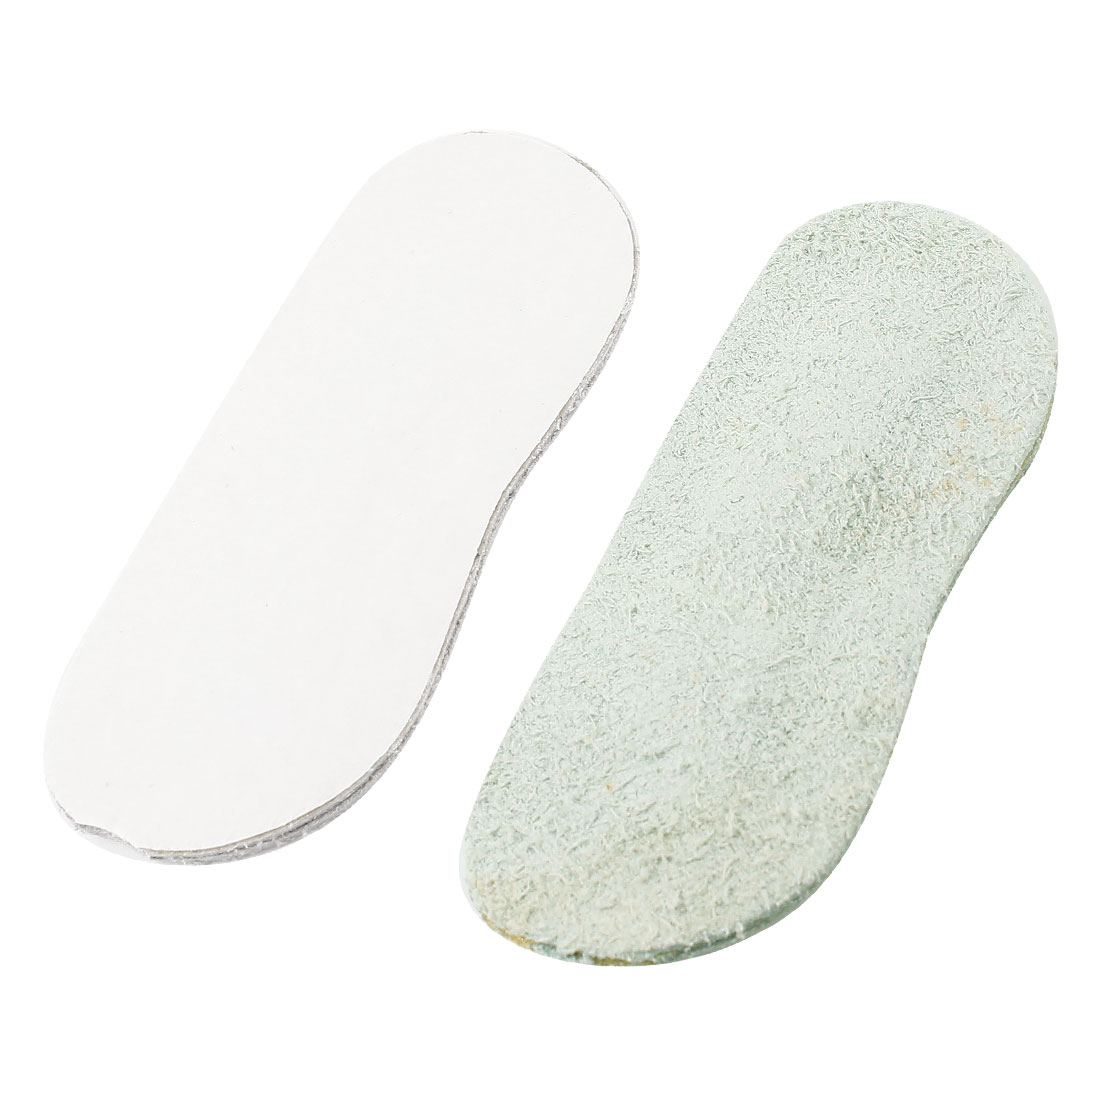 Pair Gray Faux Leather Self Adhesive Foot Care Shoes Cushion Insoles Back Pads